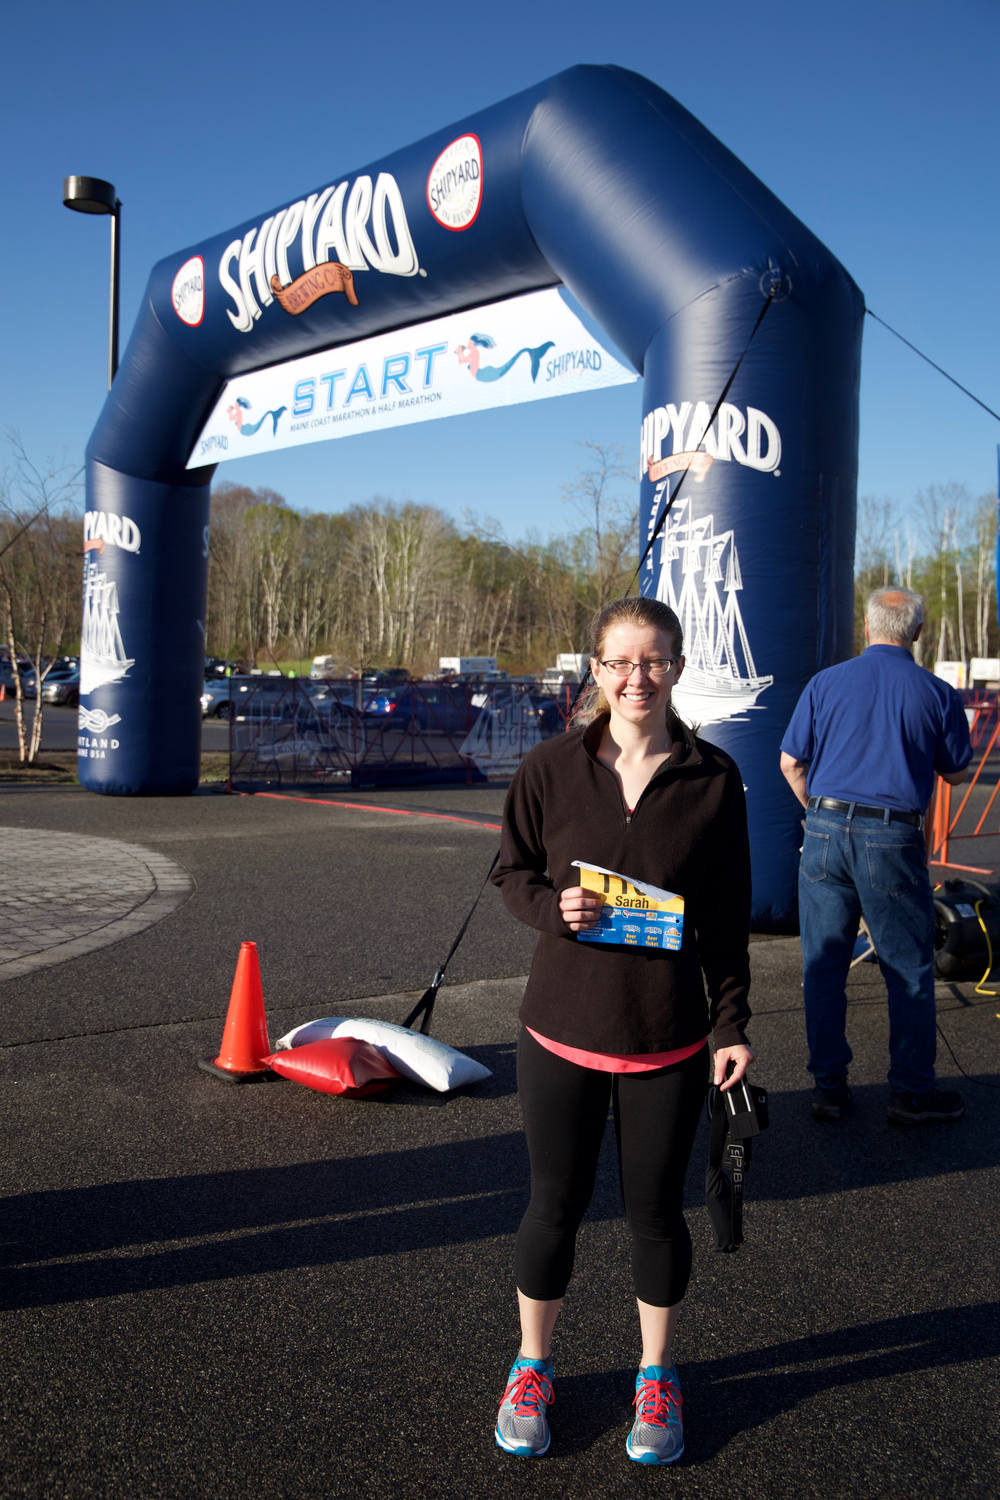 Before the start of the race, so nervous!